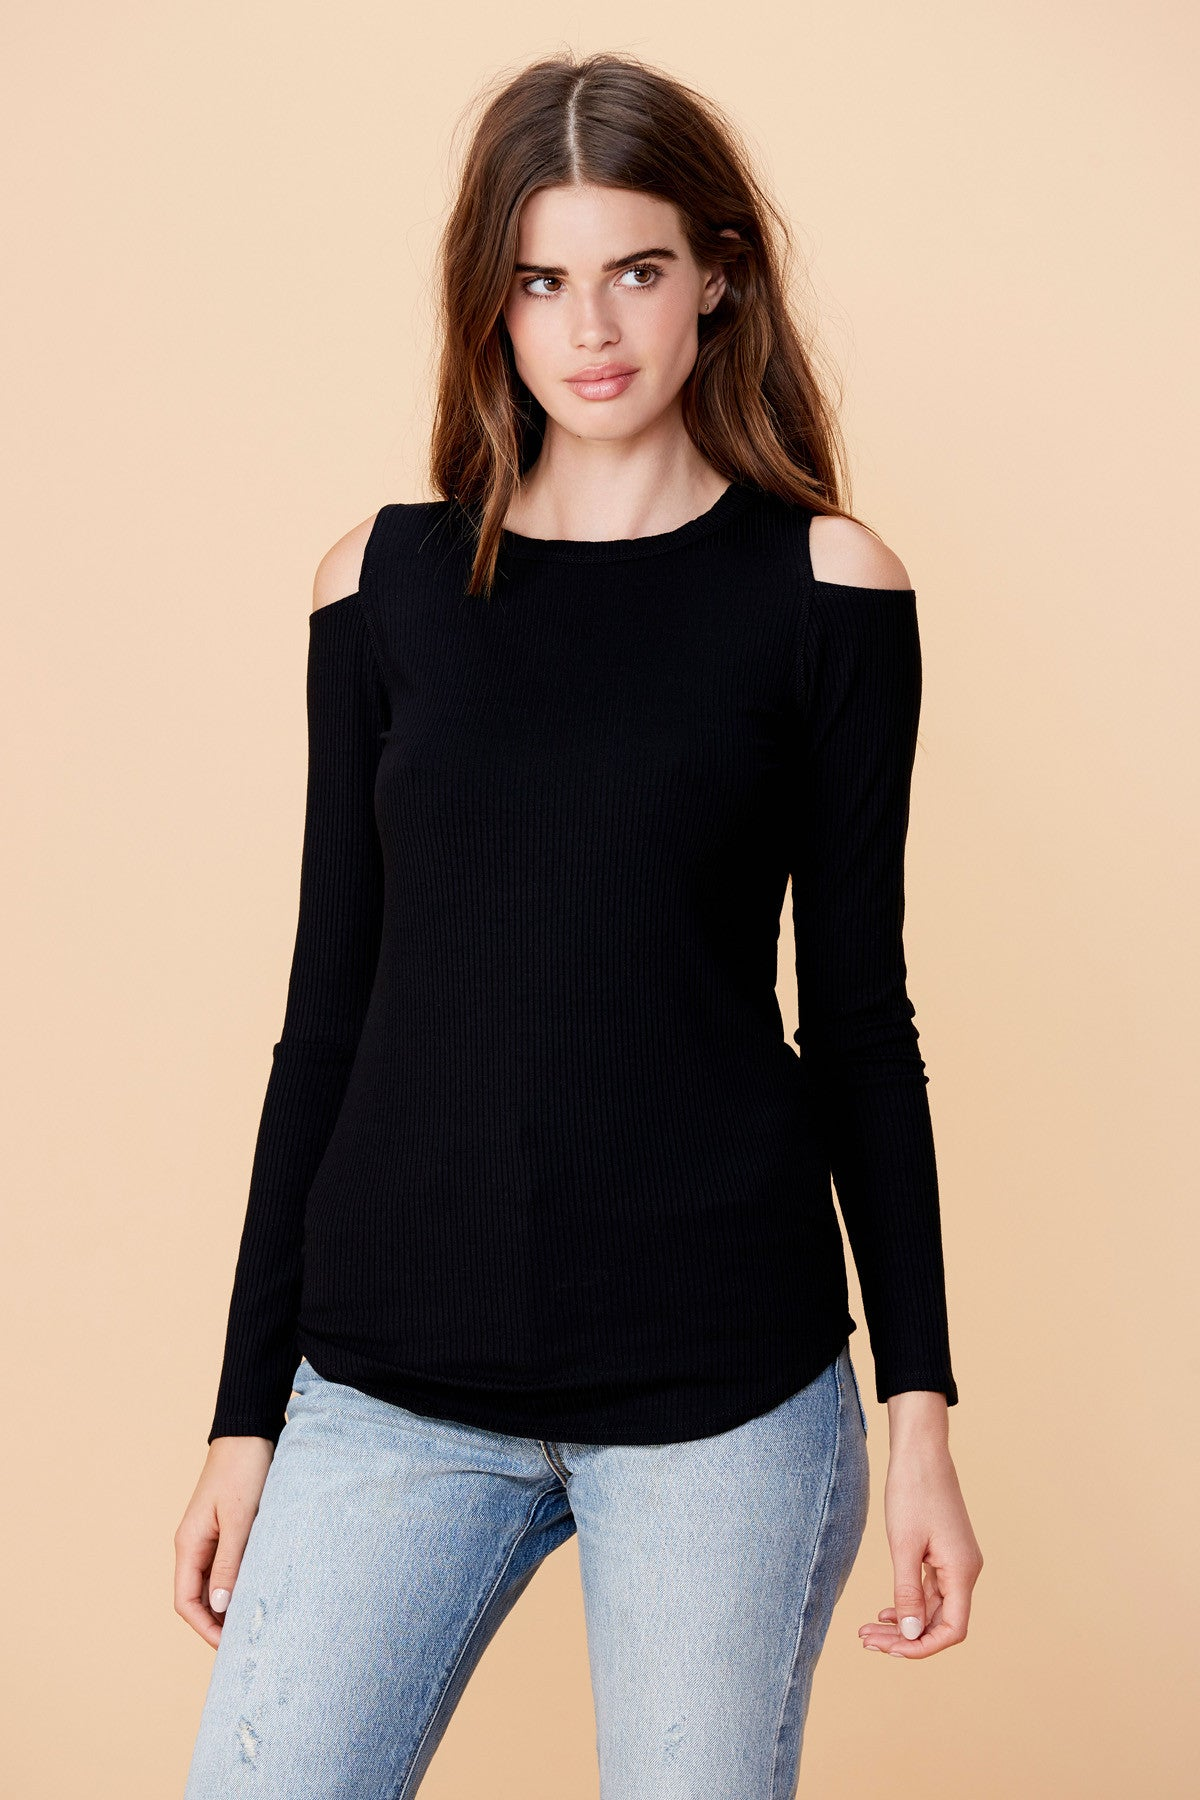 Ashley Jane Top - Black